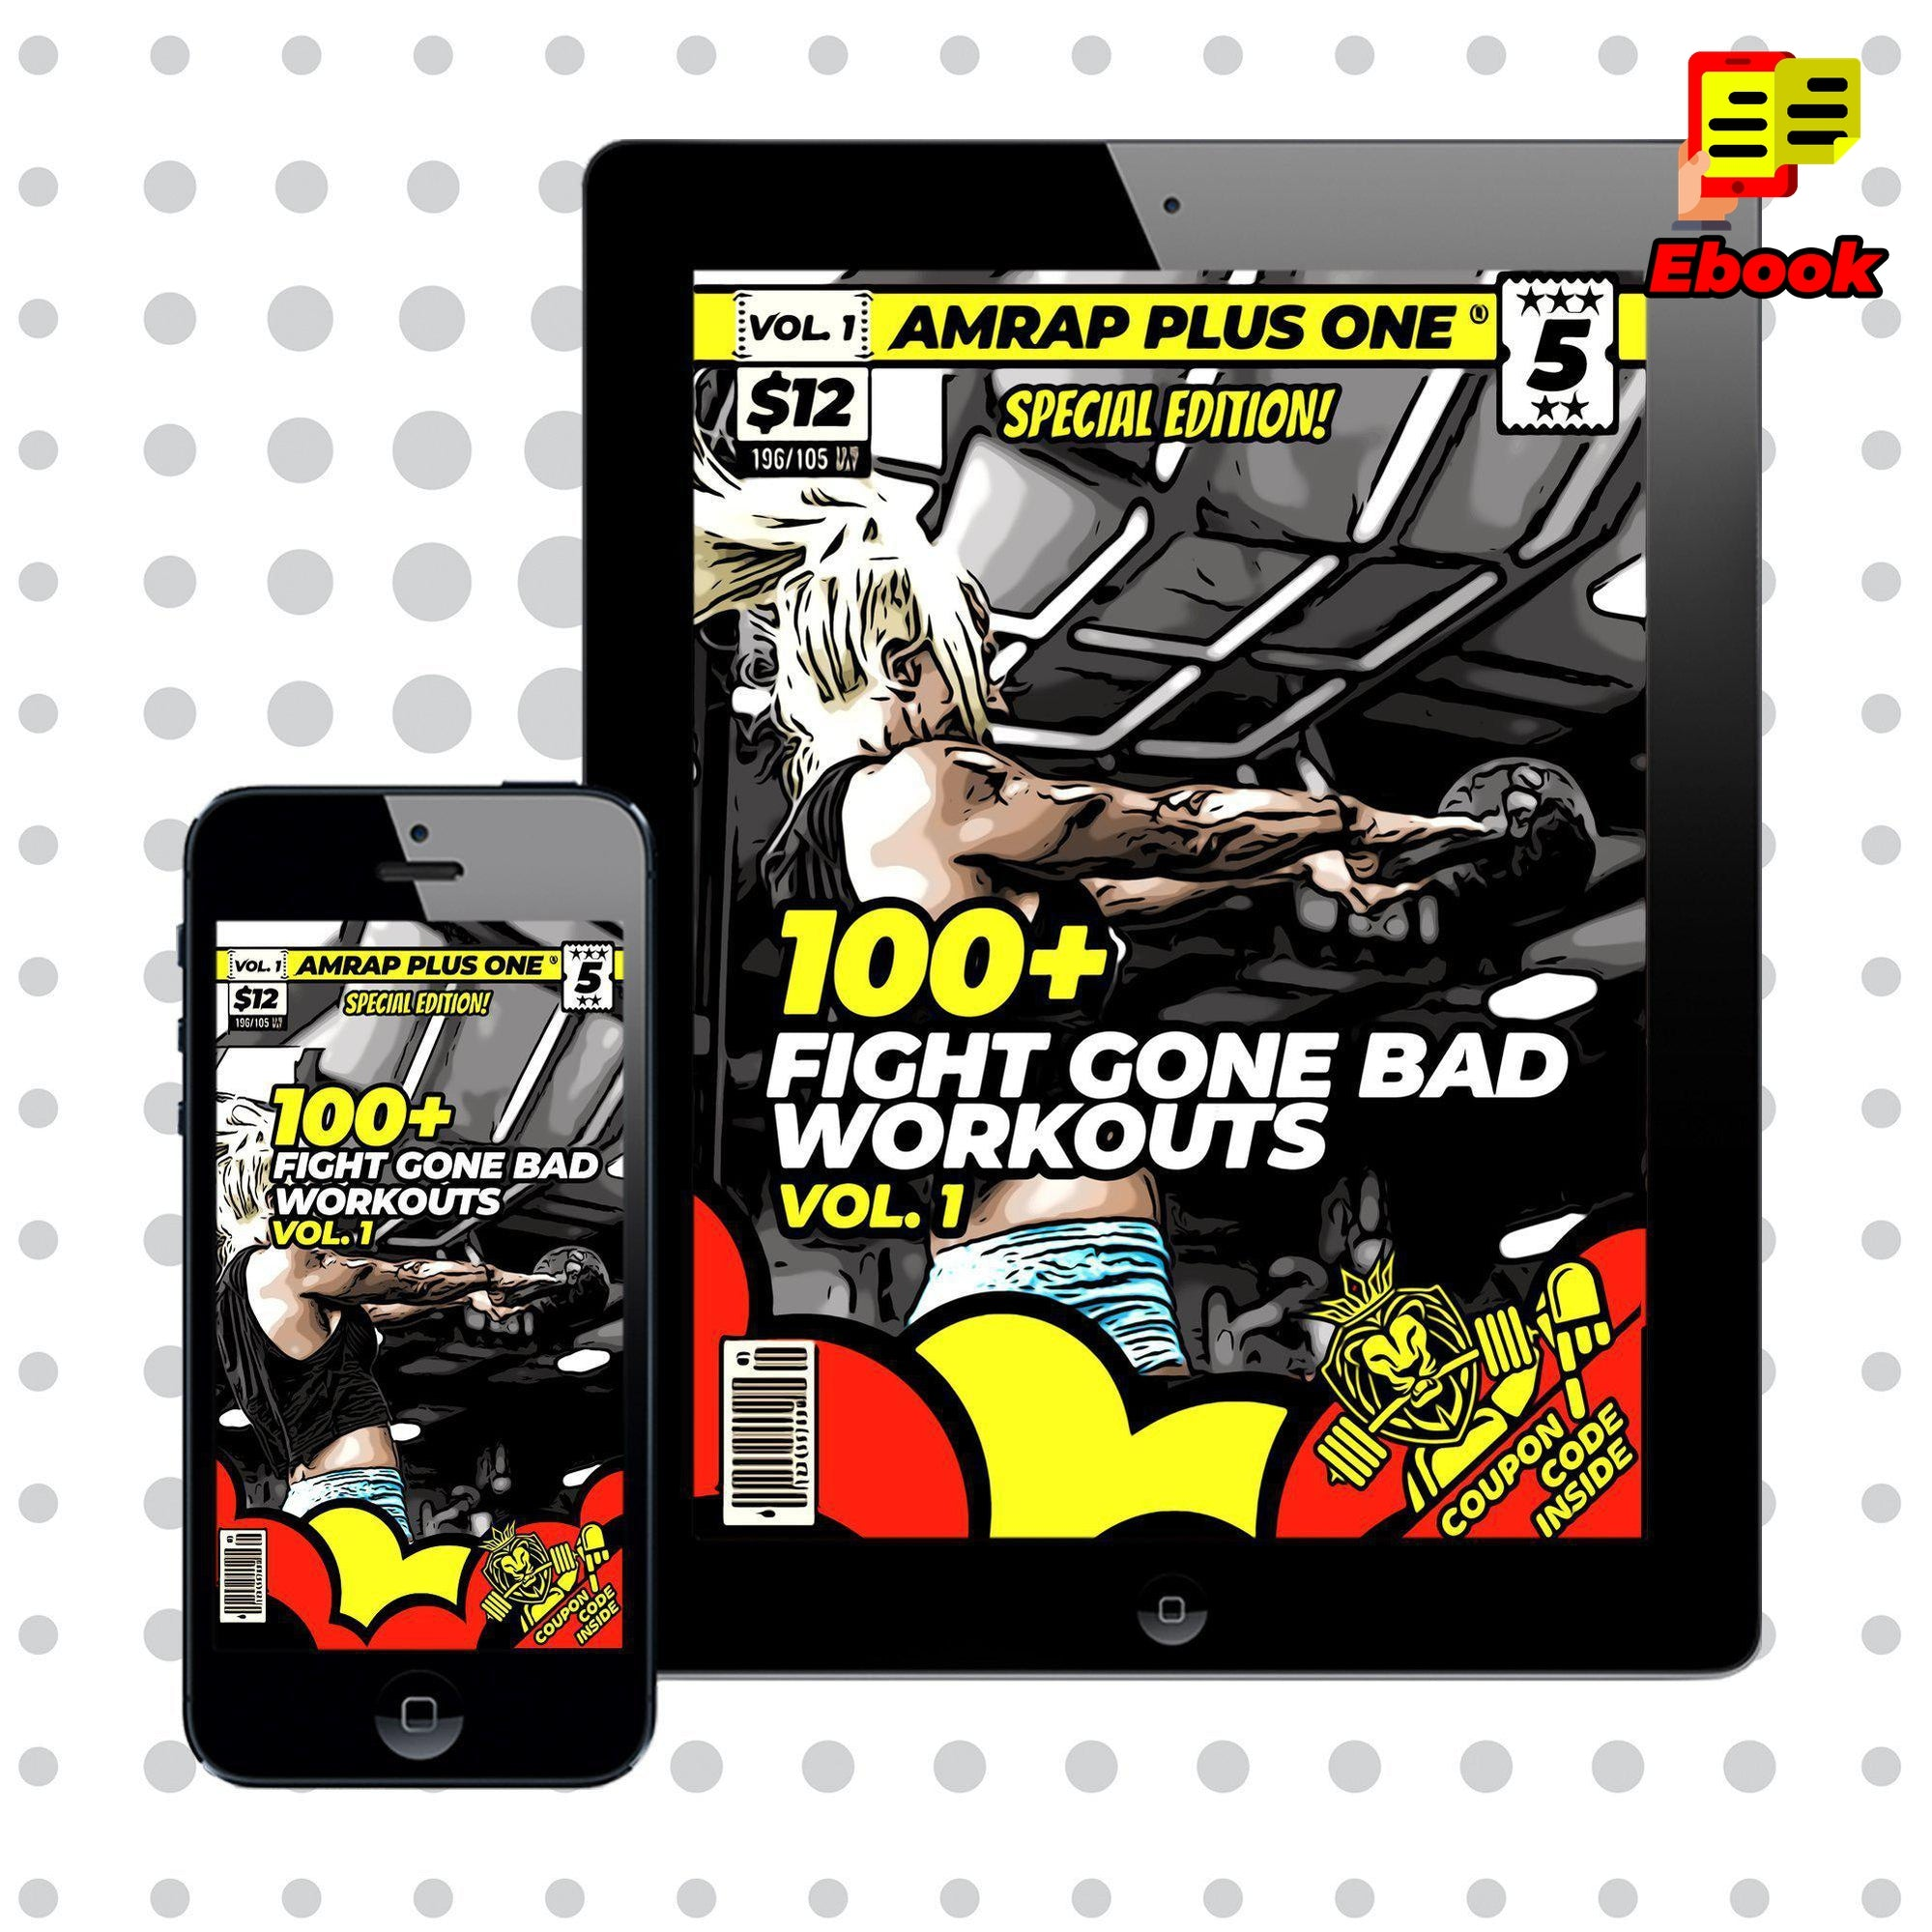 100+ Fight Gone Bad Workouts - AMRAP Plus One